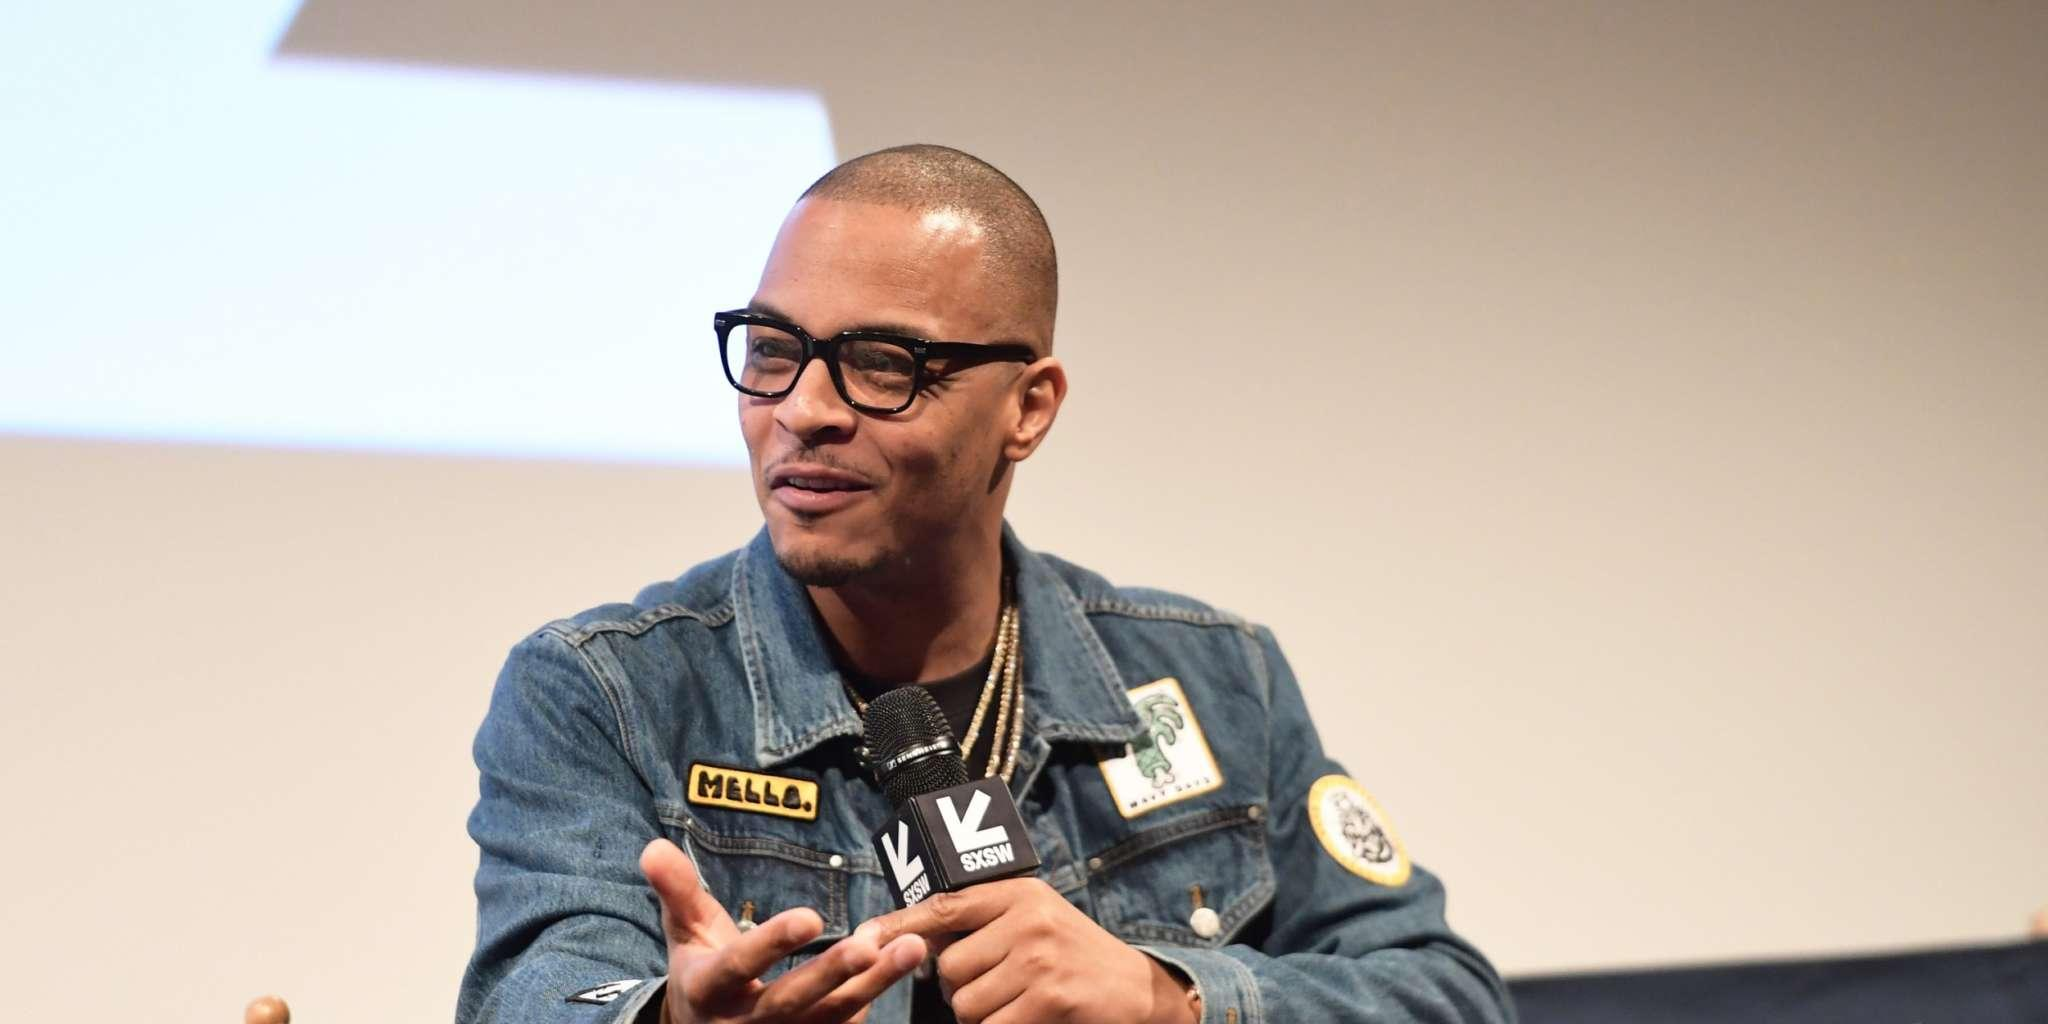 T.I.'s Latest Video Triggers A Debate Among Fans - Check Out The Post He Shared